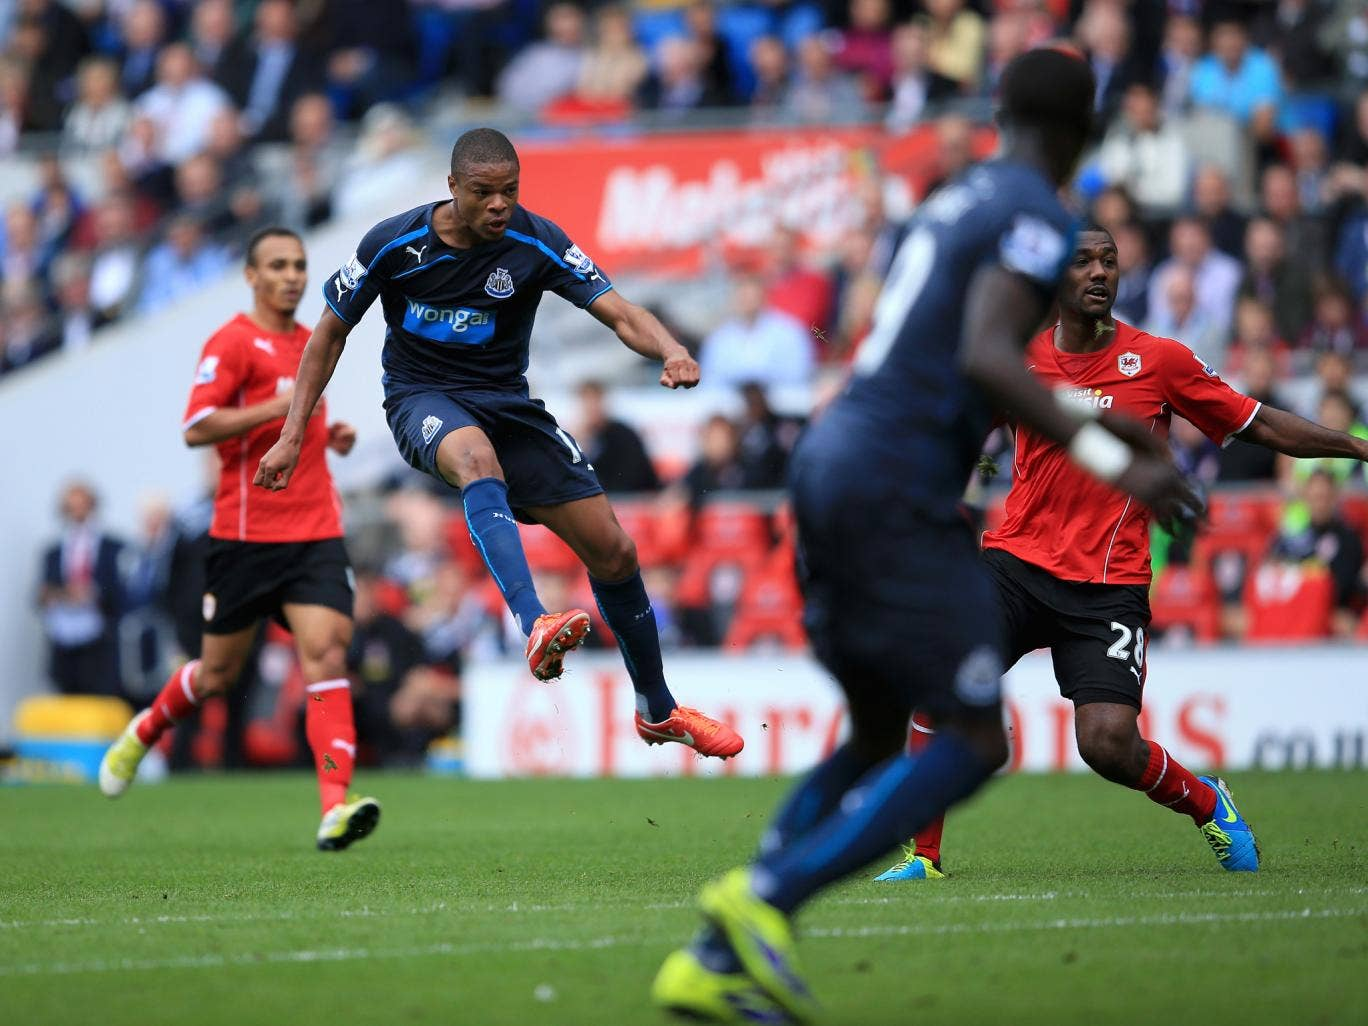 Loic Remy opens the scoring for Newcastle against Cardiff